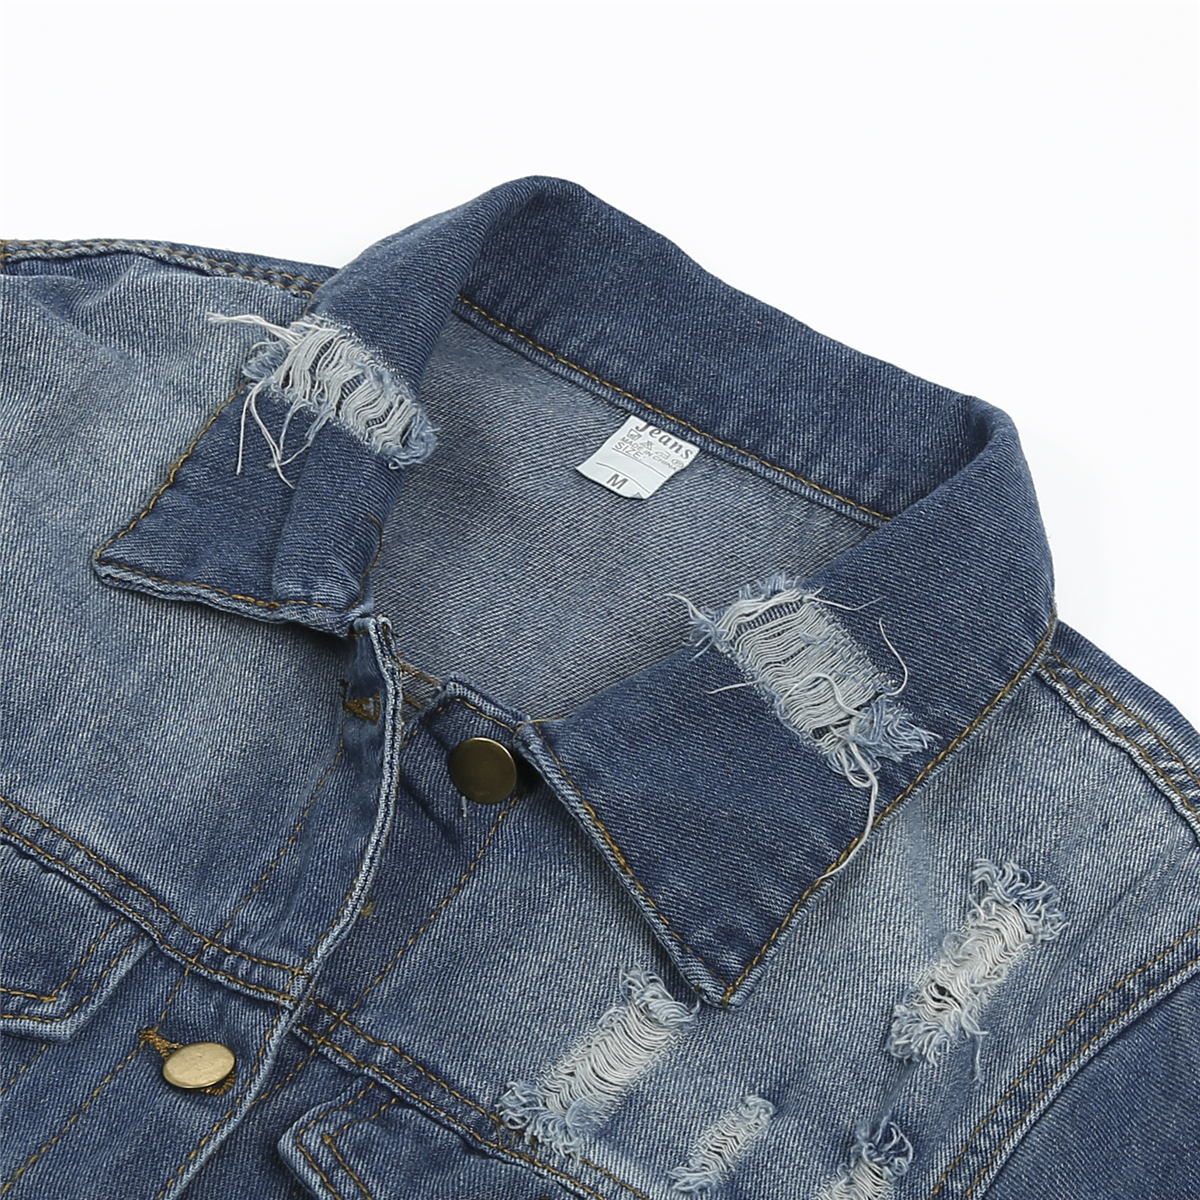 Solid Turn down Collar Jean Jacket for Women Loose Casual Blue Fashionable Women Coats Female outwear Solid Turn-down Collar Jean Jacket for Women Loose Casual Blue Fashionable Women Coats Female outwear Denim Feminine